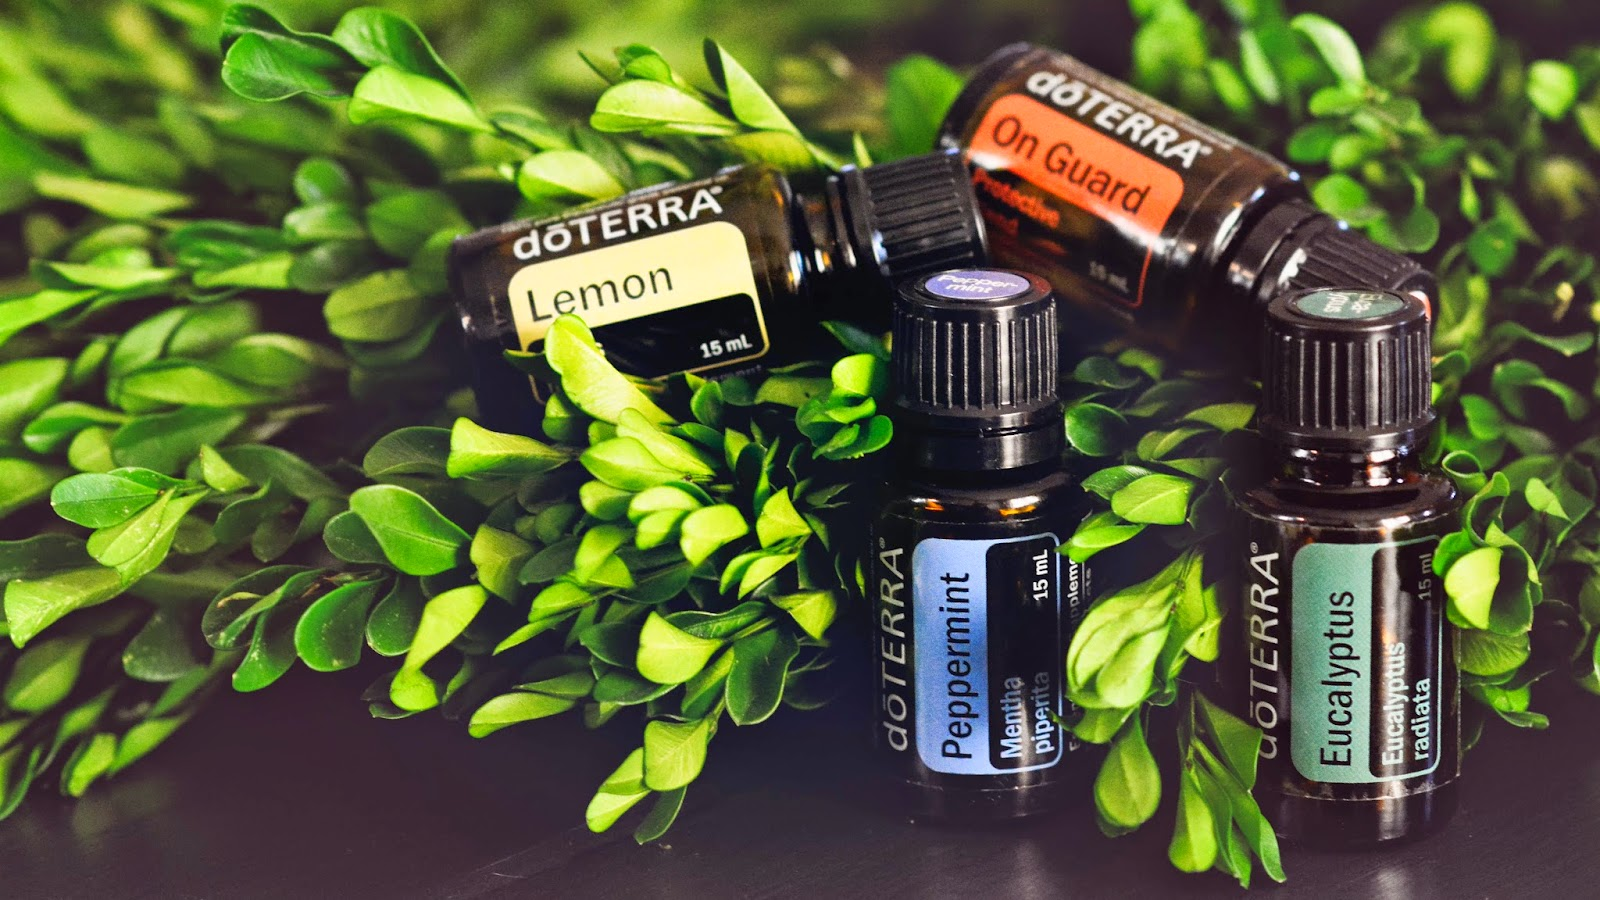 Pop-Up Shop: doTERRA Pure Therapeutic Grade Essential Oils